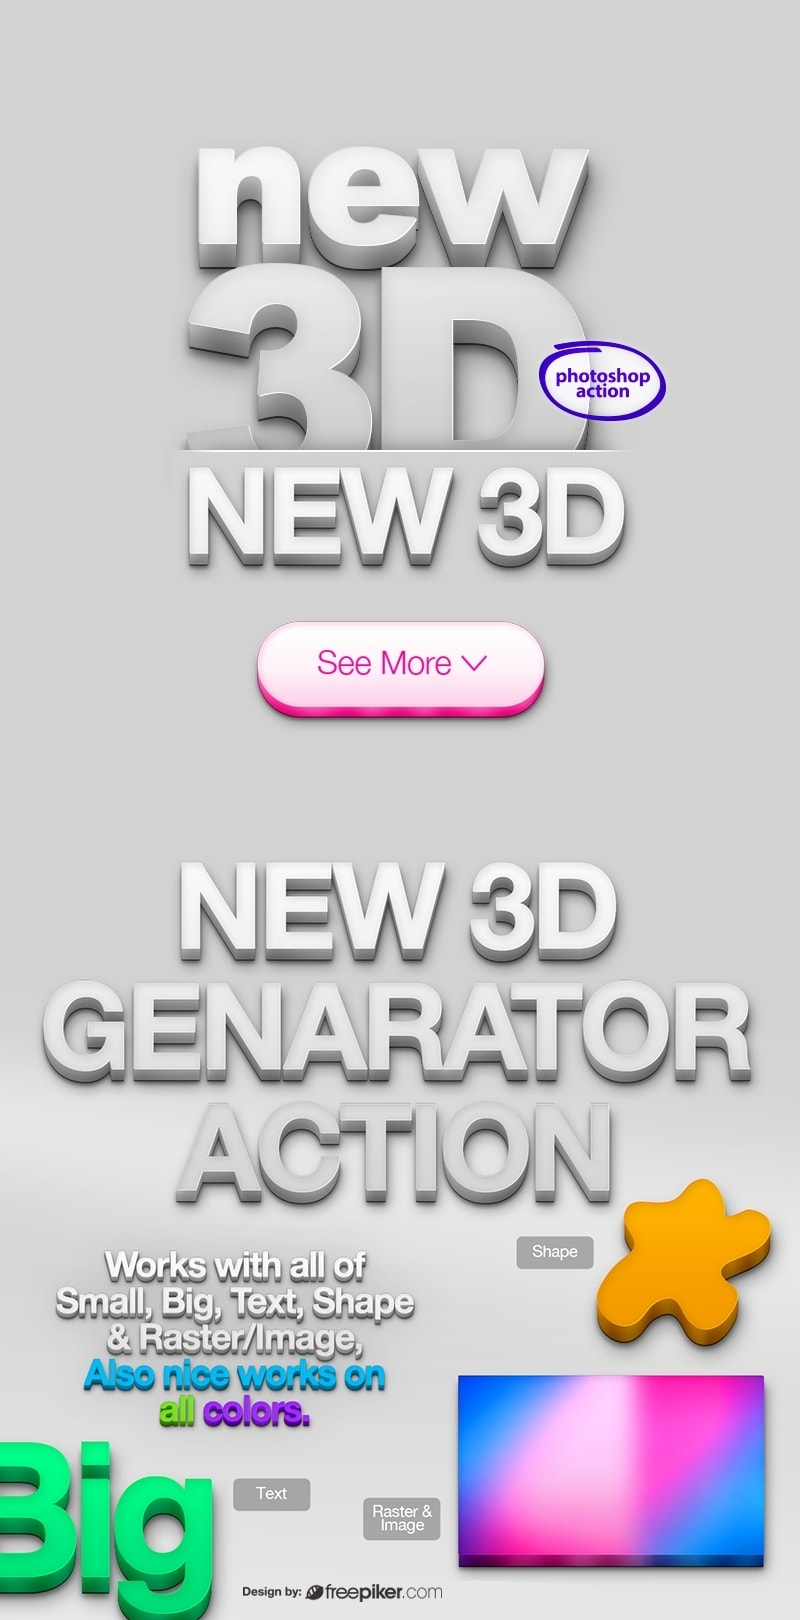 3 Dimensions | 3D Generator Action Photoshop